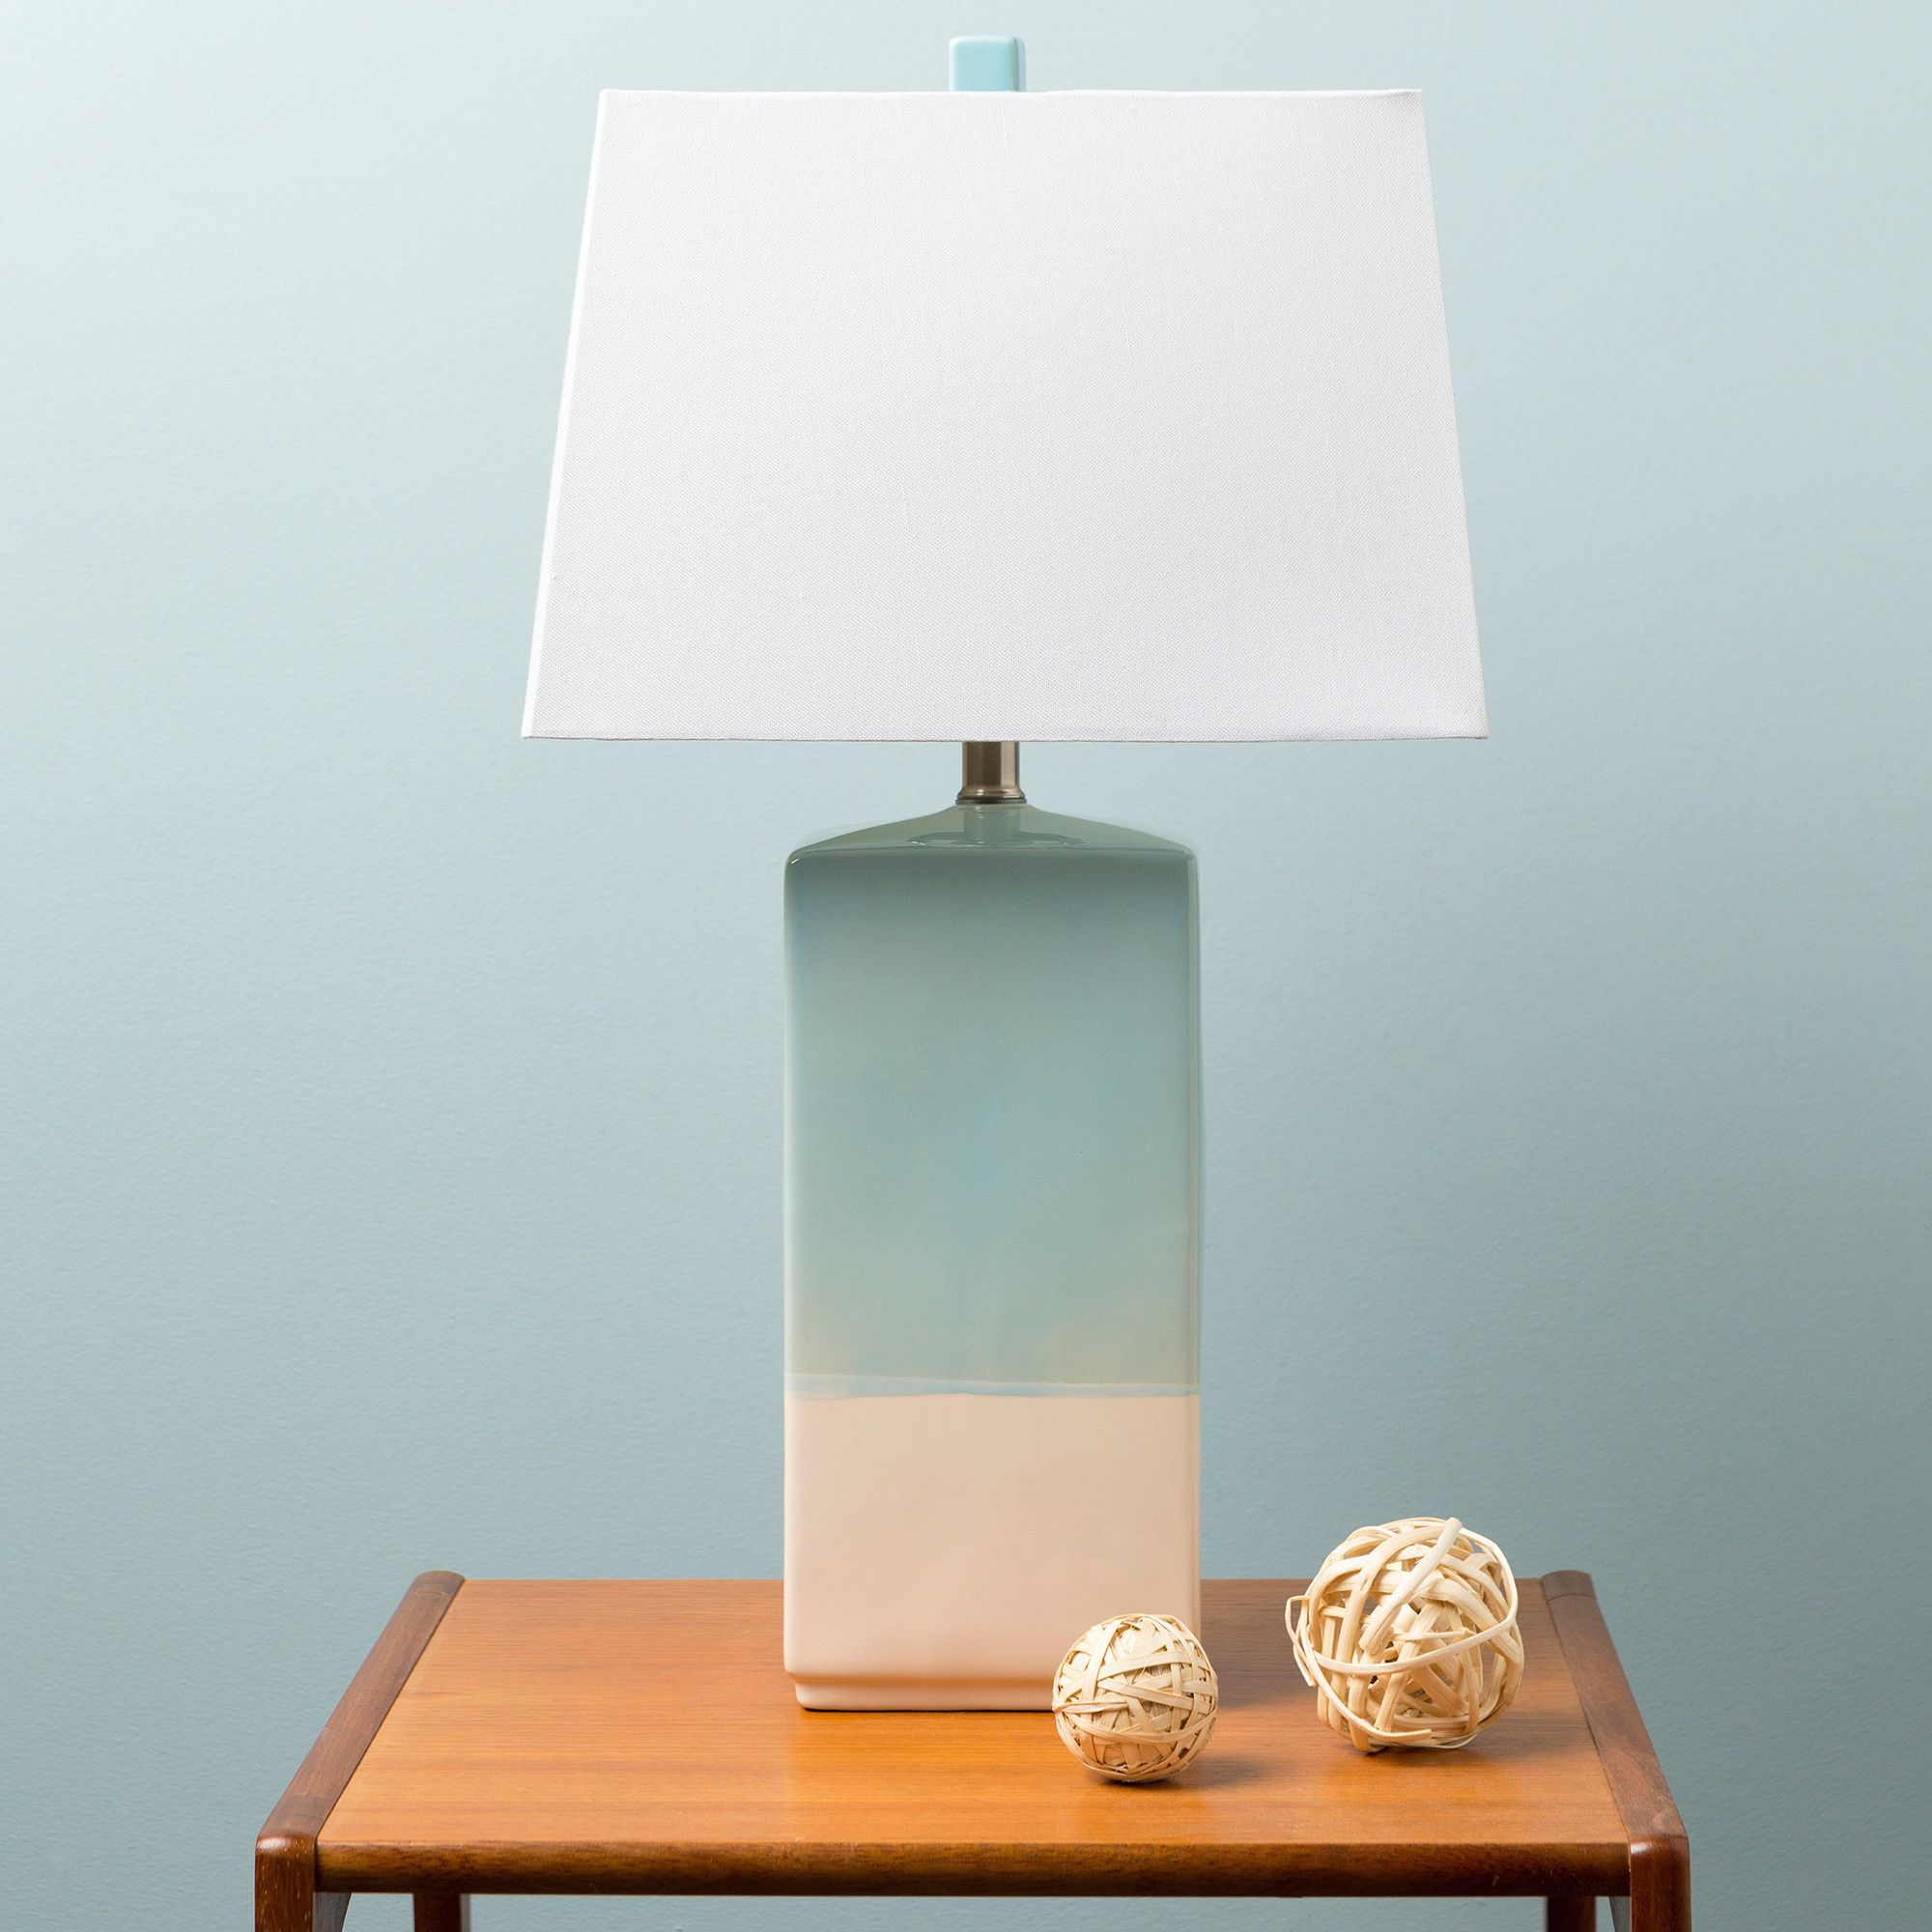 Add A Stylish Touch With This 245 Inch High Linen Shaded Rustic 3 Way Switch Light Lamp Its Ceramic Base Glazing Makes Chic In Any Room The Cord On Socket Is